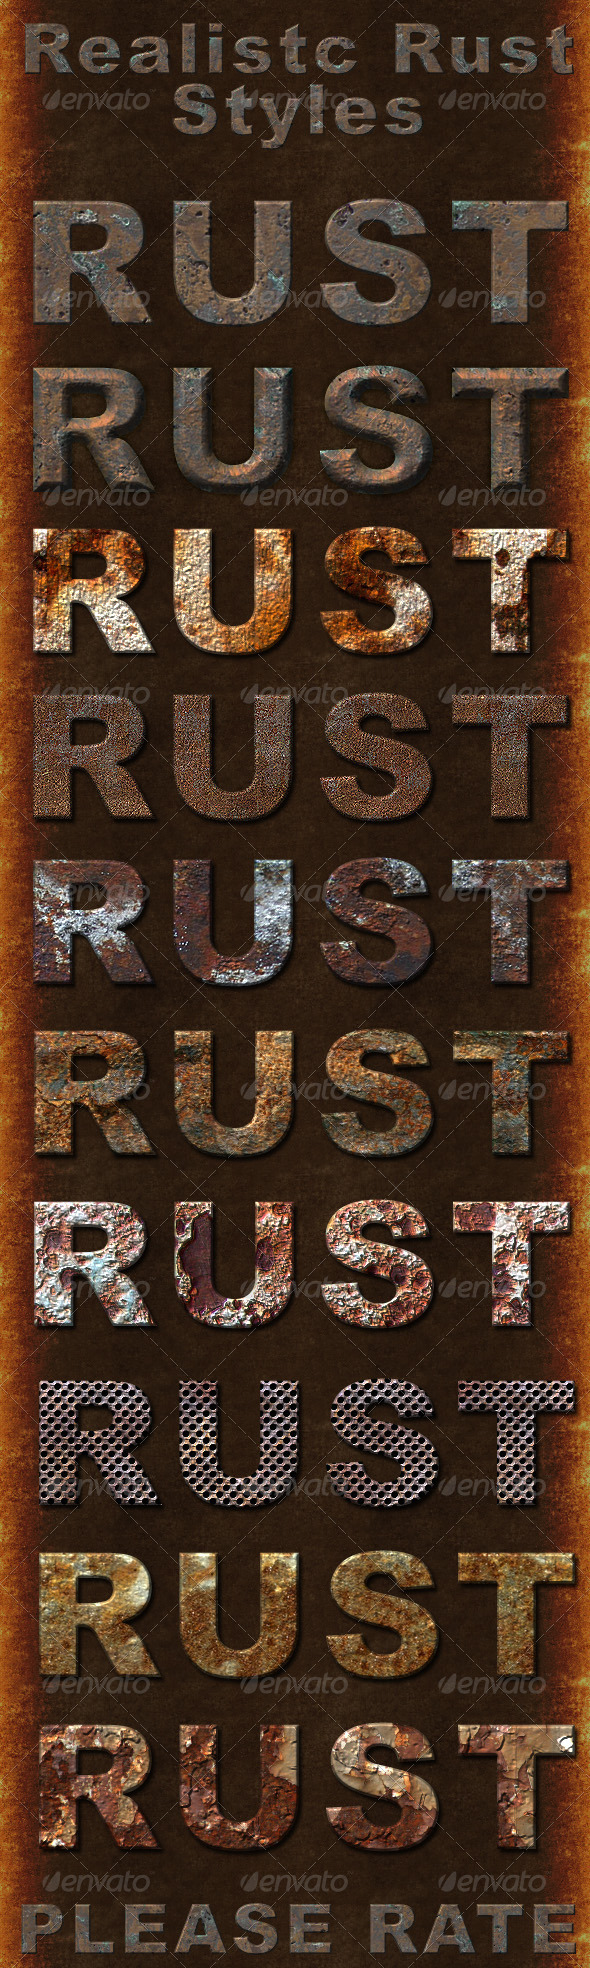 Realistic Rust Styles - Photoshop Add-ons